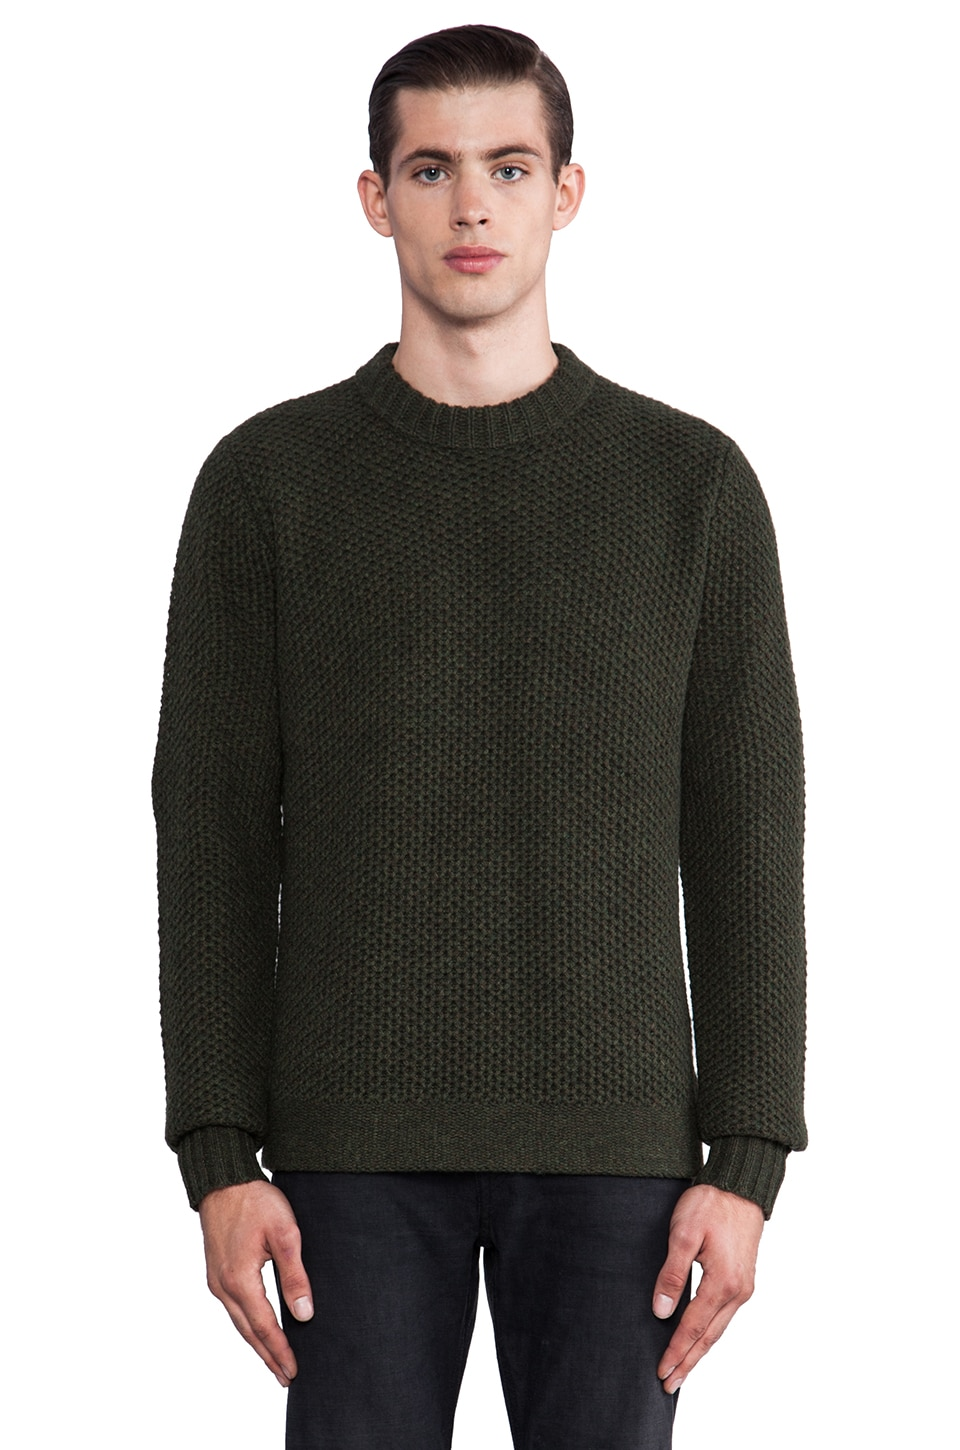 Natural Selection Denim Hive Crew Knit Sweater en Olive